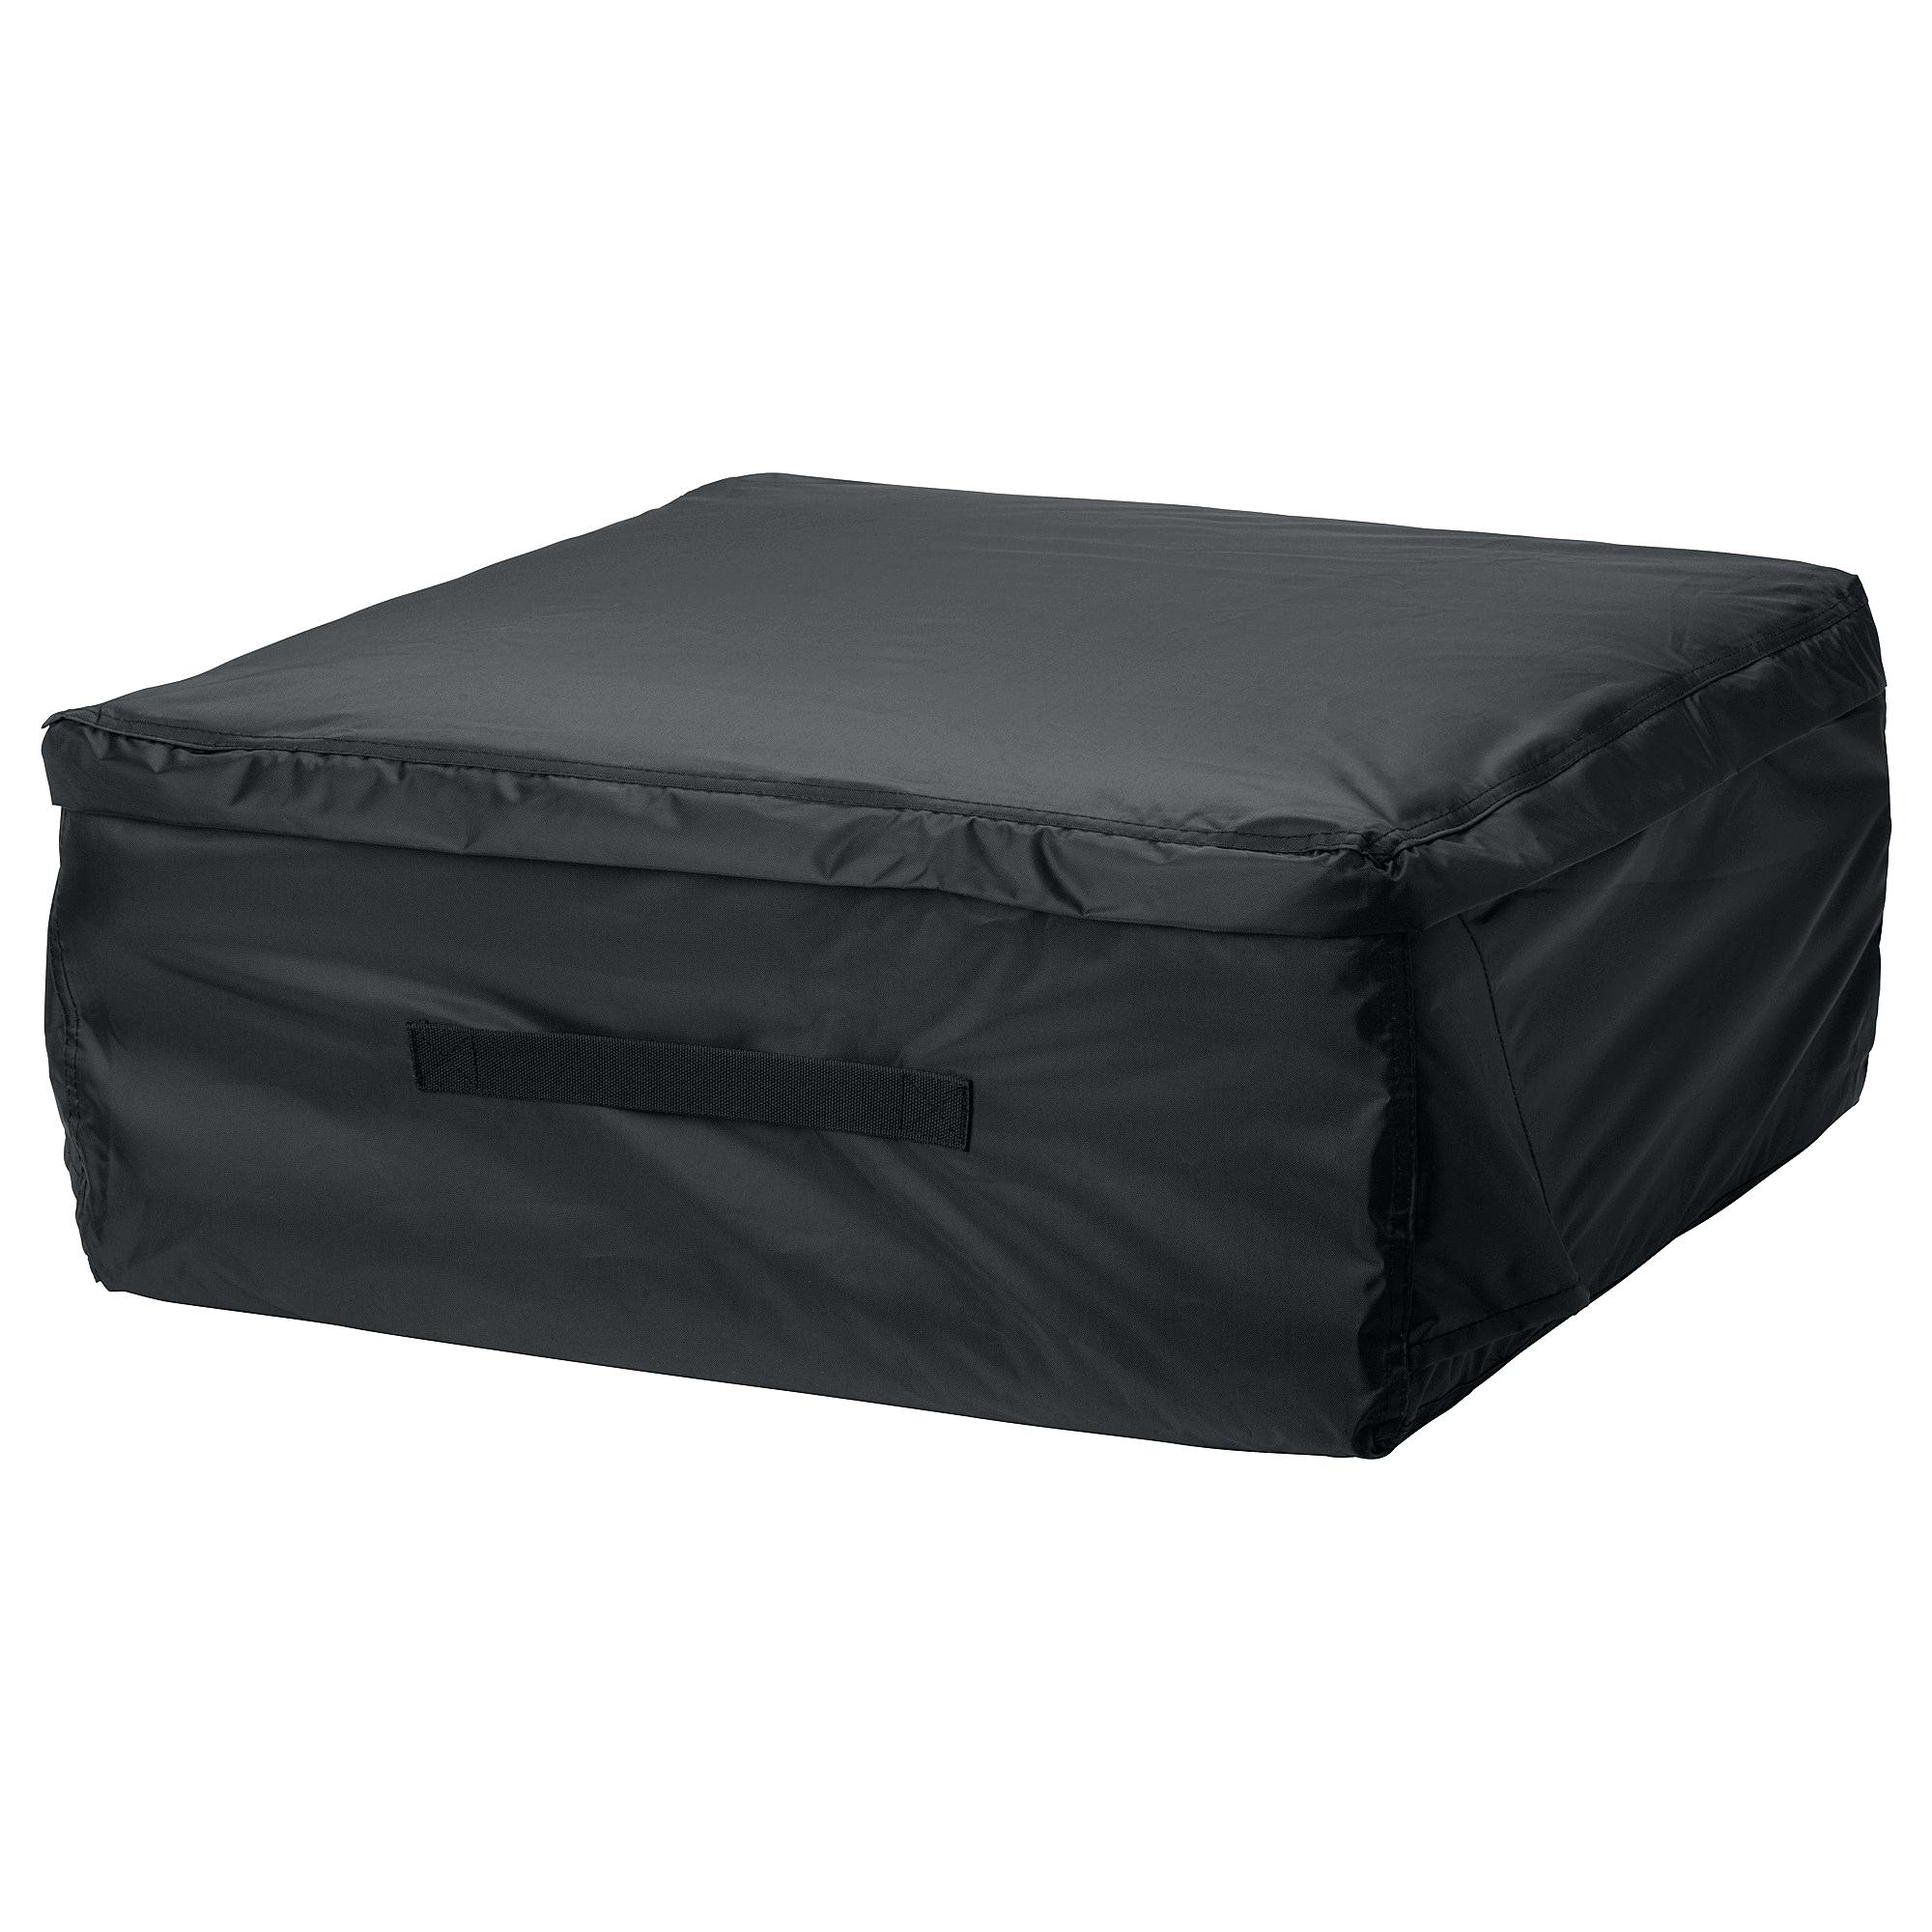 Storage Covers For Furniture Tcsolucionesco in size 2000 X 2000